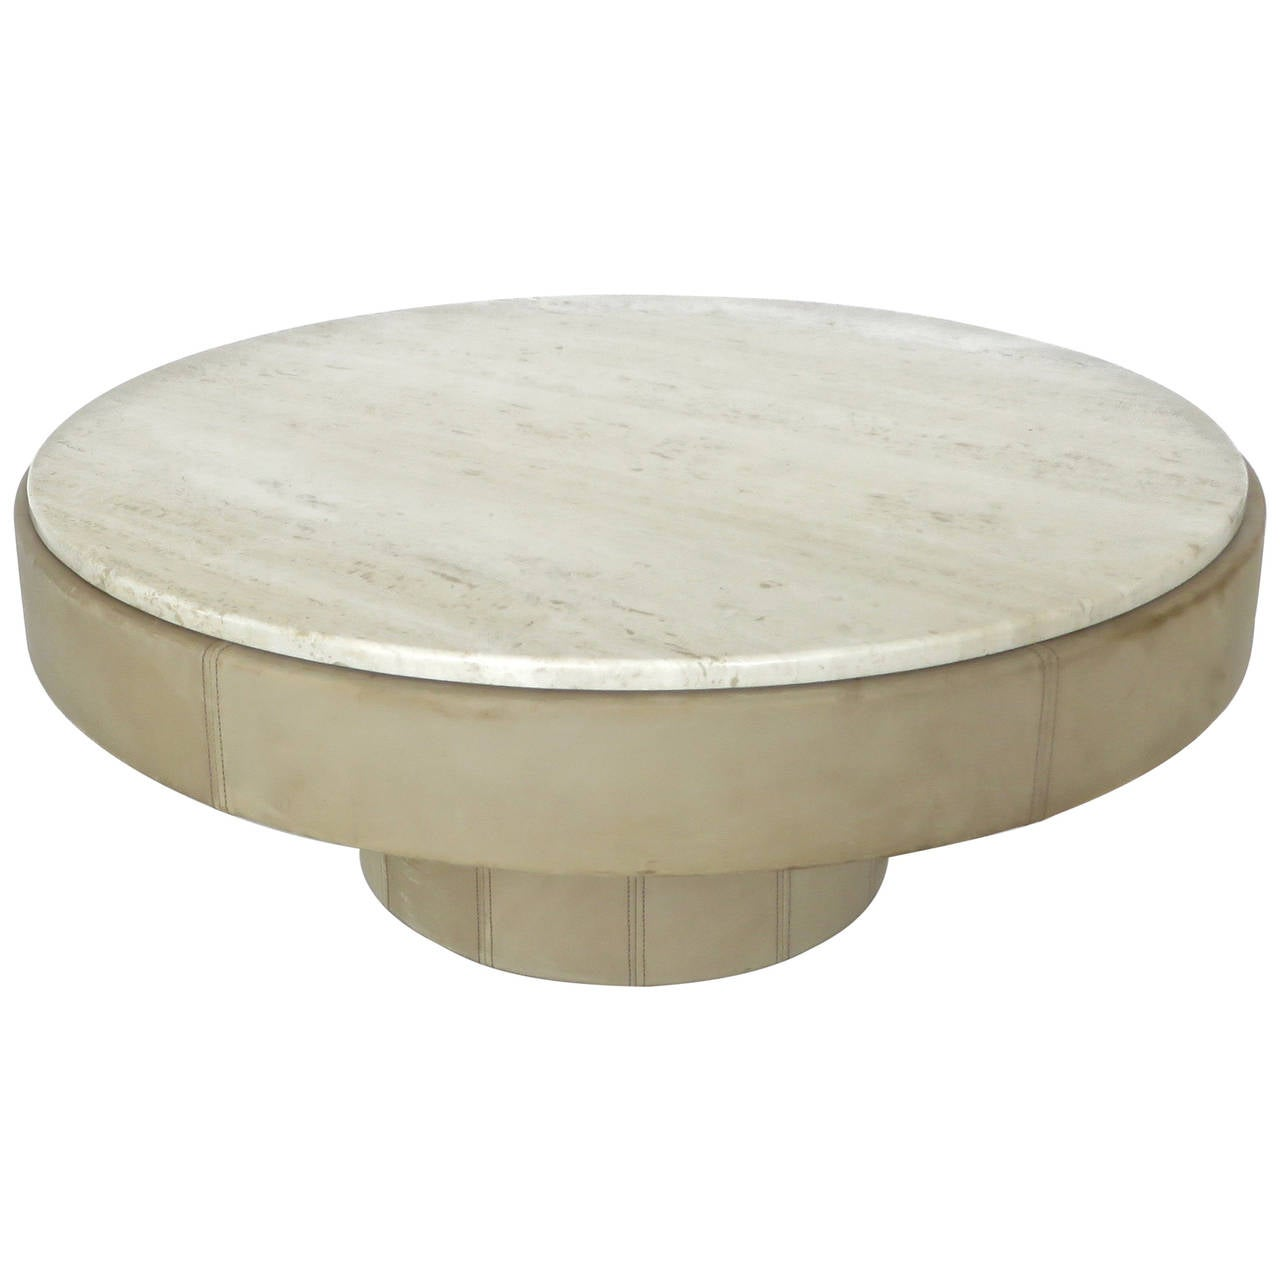 French cream leather and travertine marble round coffee table at 1stdibs Round marble coffee tables